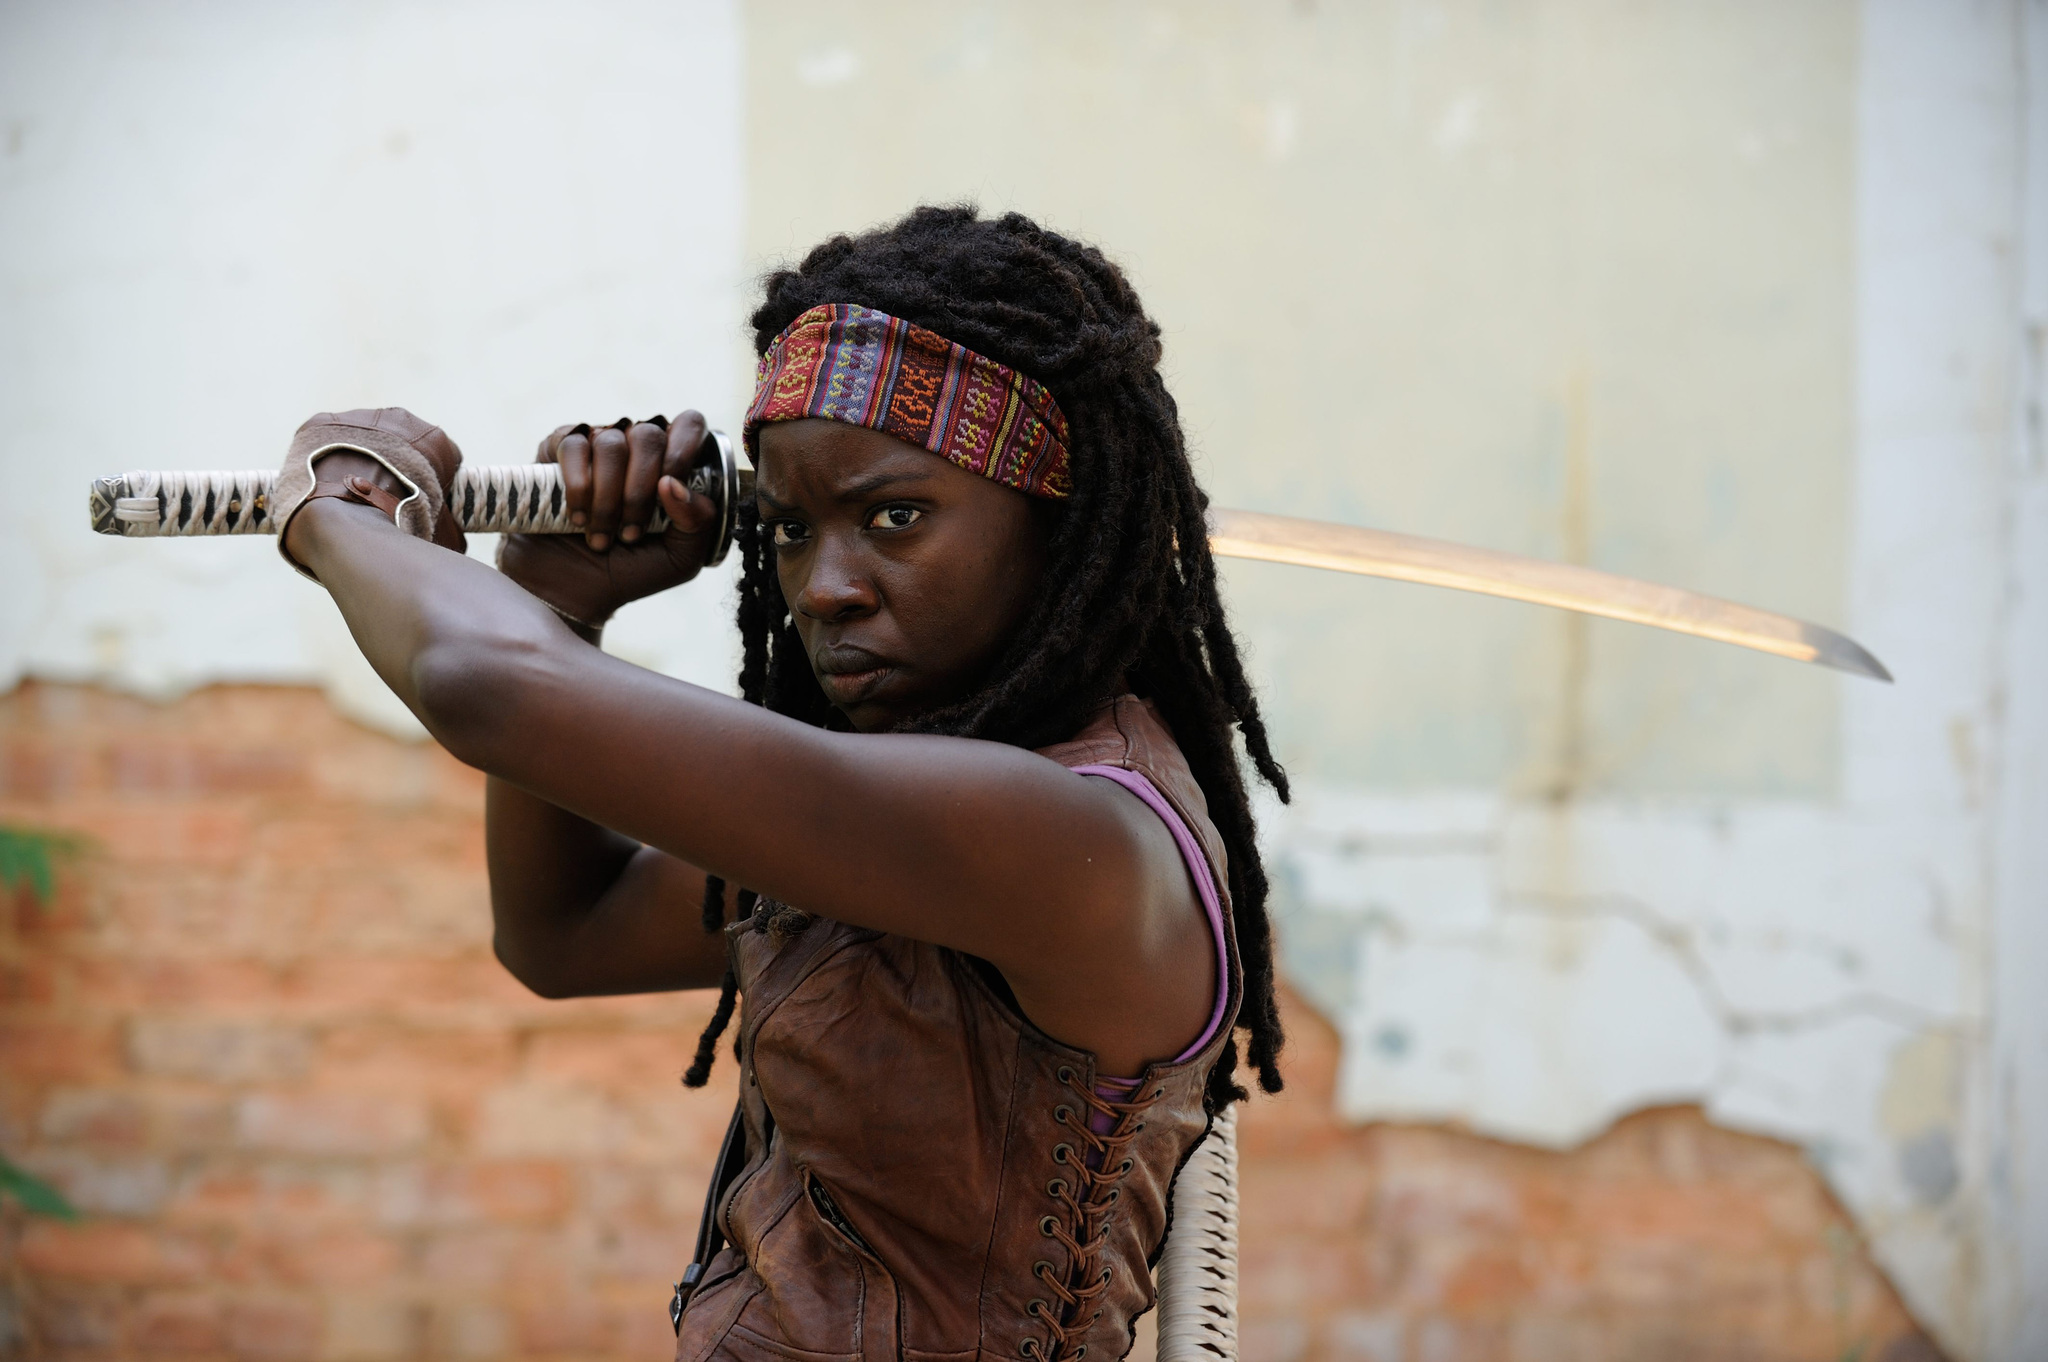 http://img2.wikia.nocookie.net/__cb20121016221919/walkingdead/images/2/2c/Walking-dead-michonne_510.jpg